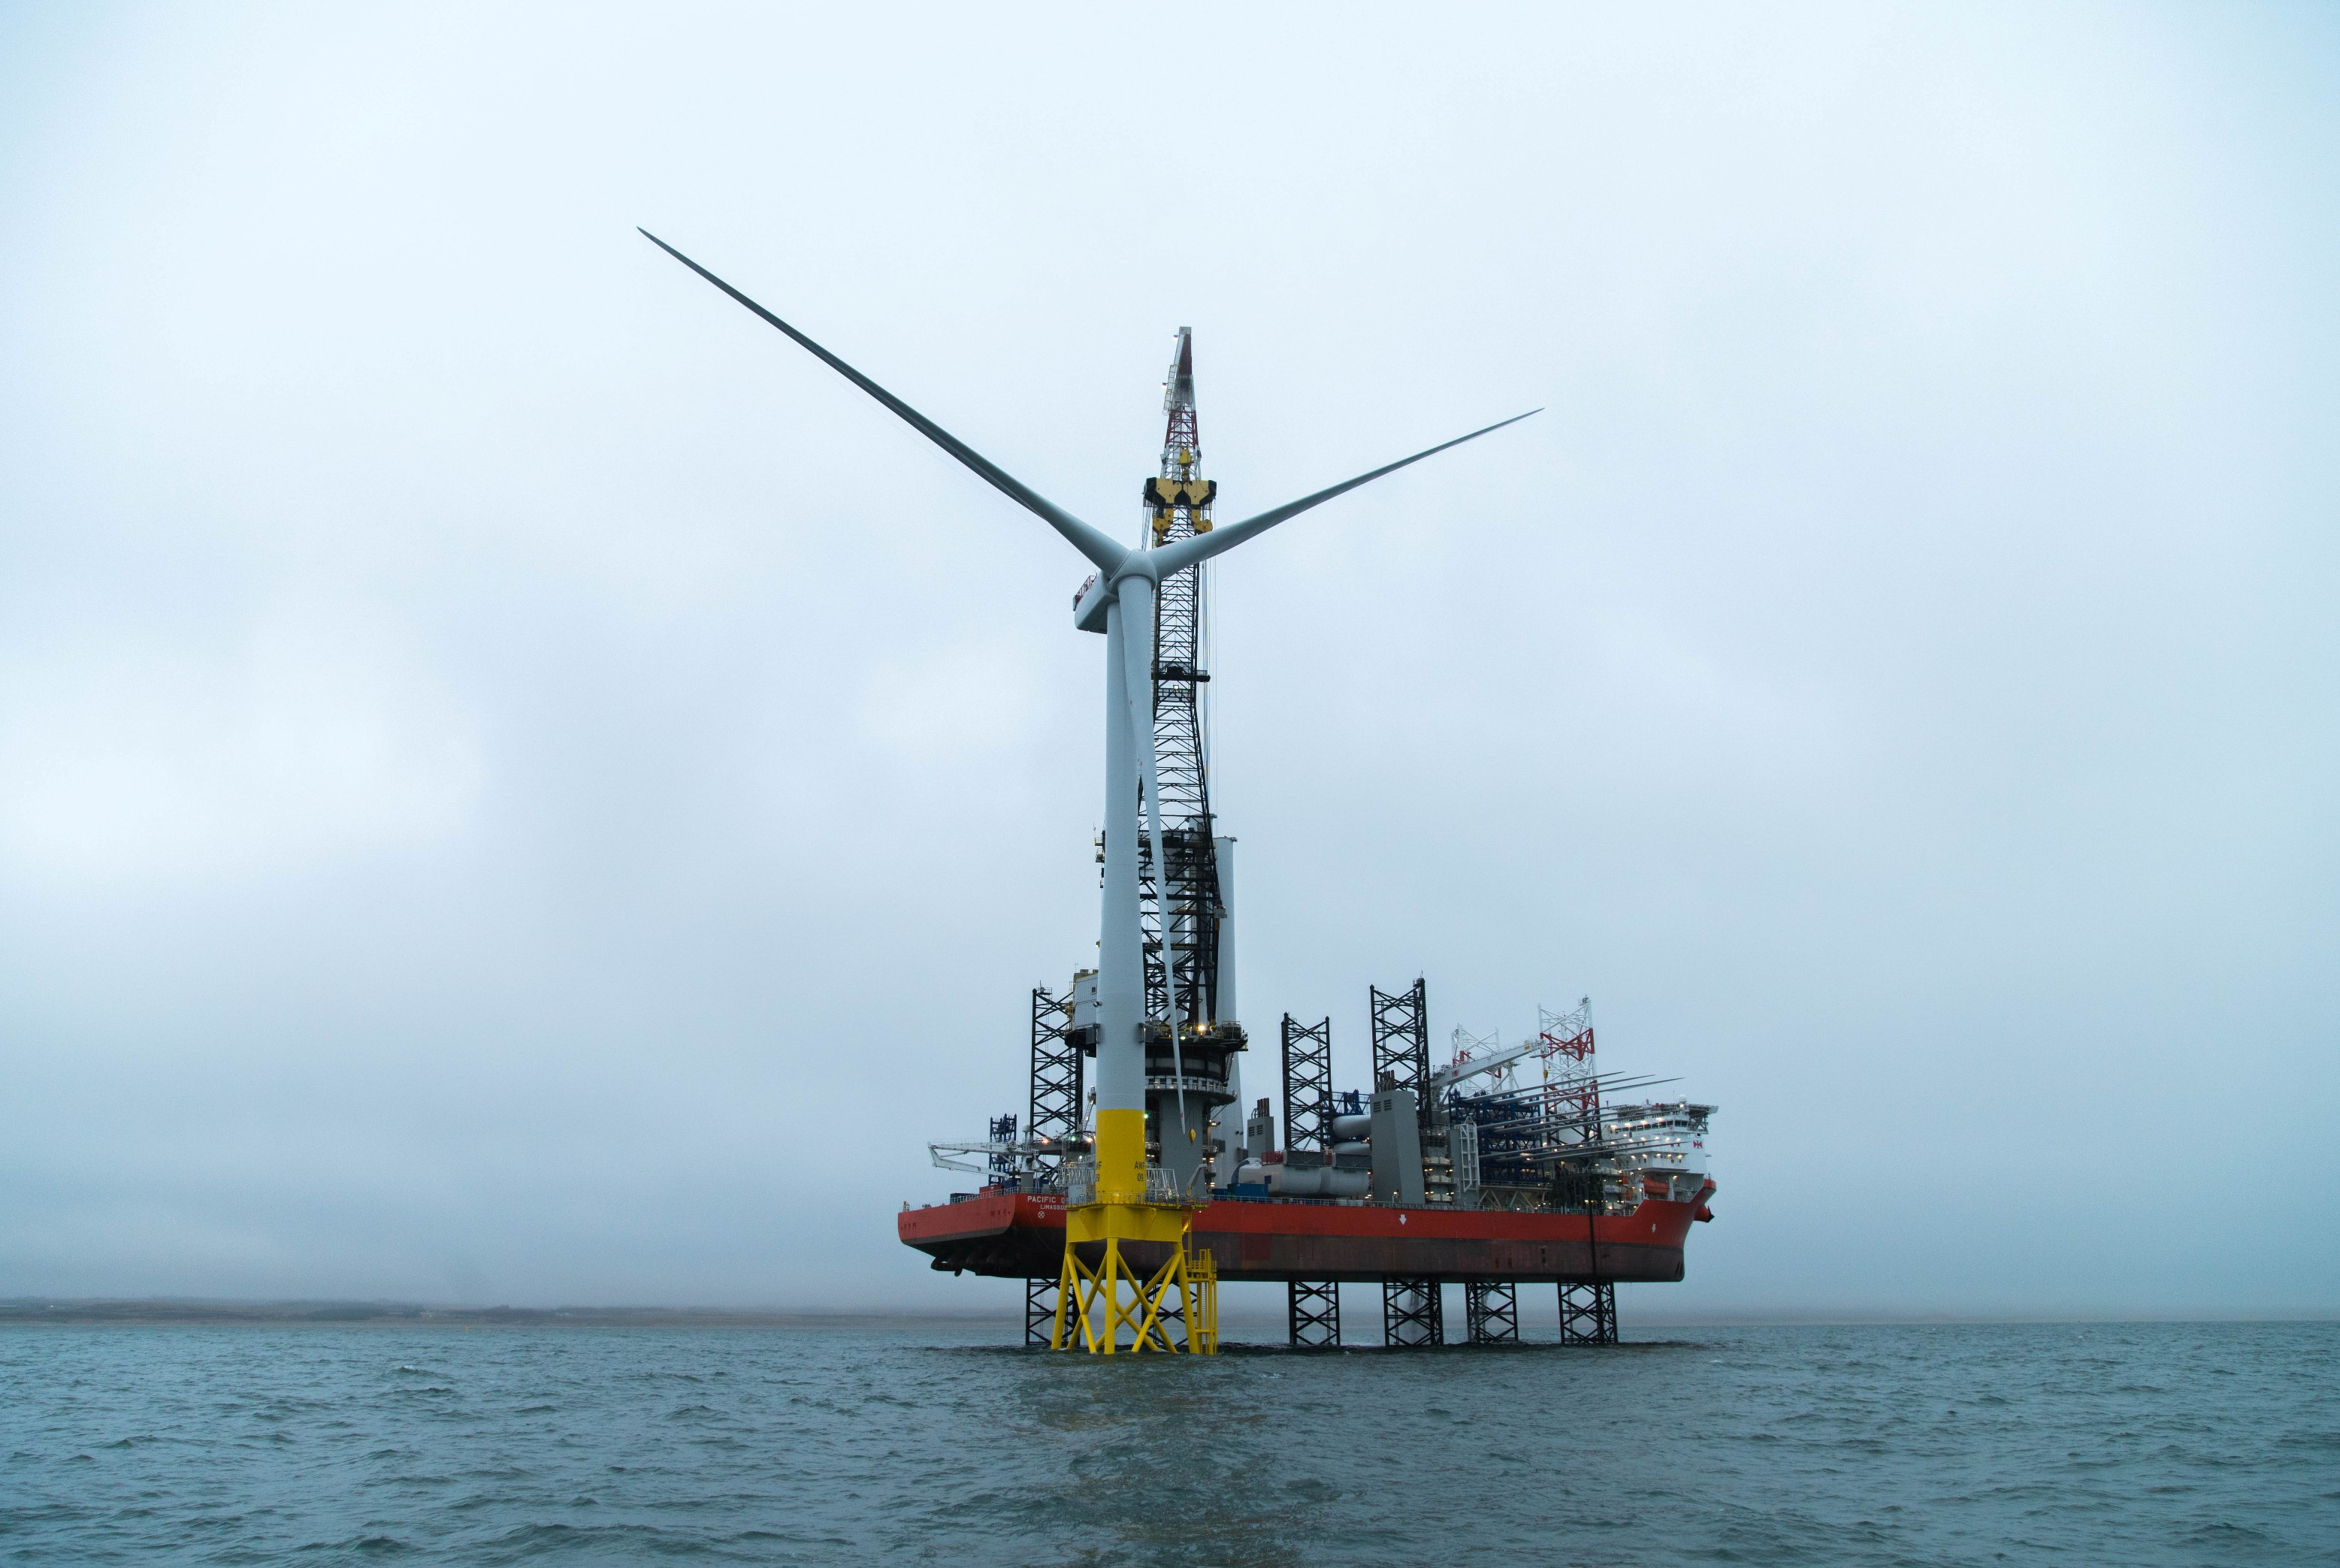 Wind turbine installation in Scottish waters